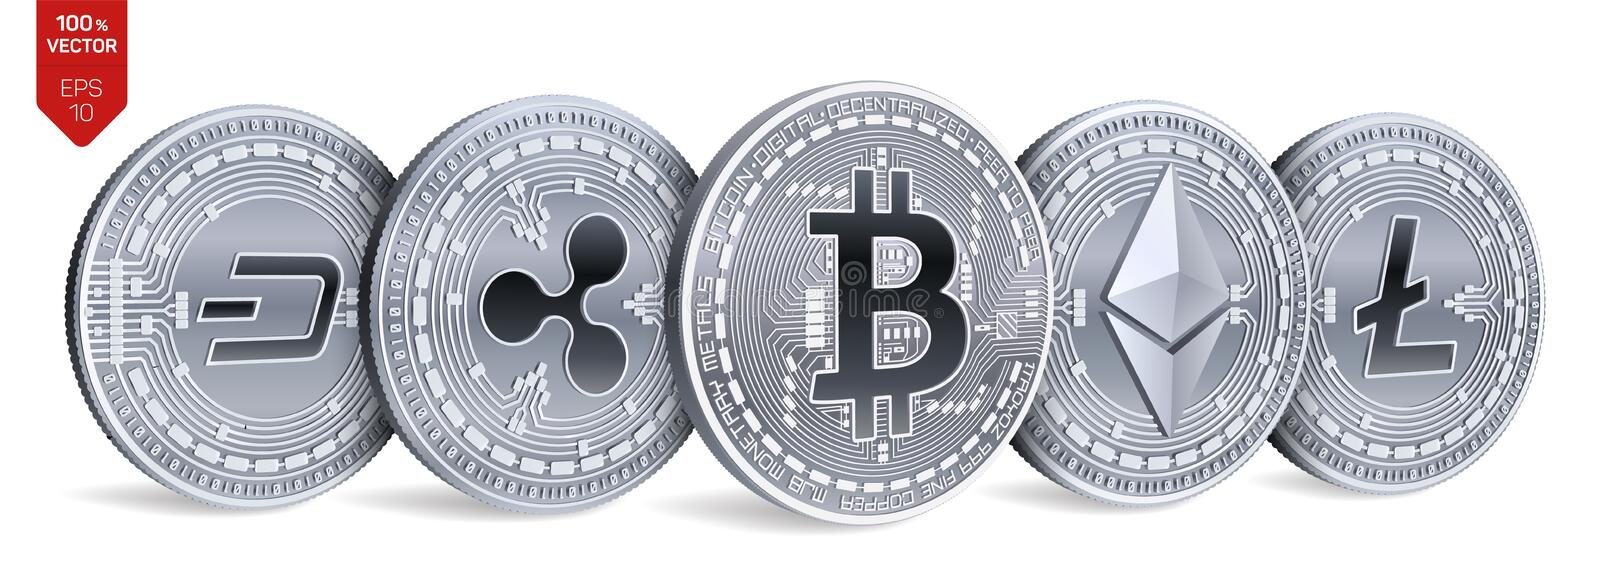 Bitcoin. Ripple. Ethereum. Dash. Litecoin. 3D isometric Physical coins. Crypto currency. Silver coins with bitcoin, ripple, ethere royalty free illustration